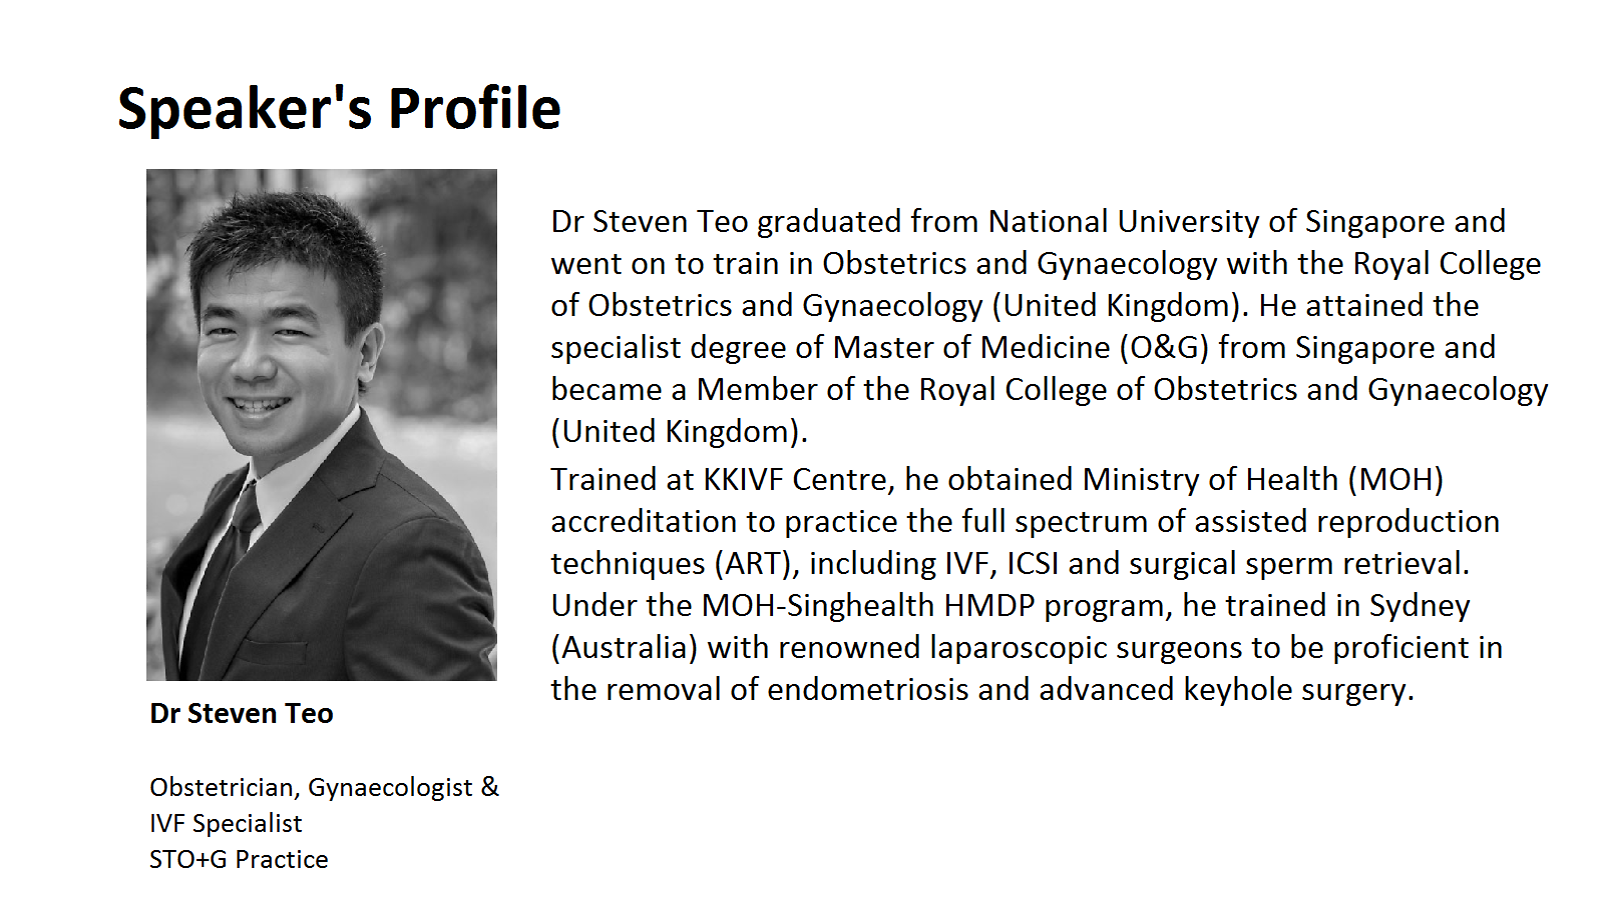 Dec seminar_Speakers Profile [Steven]